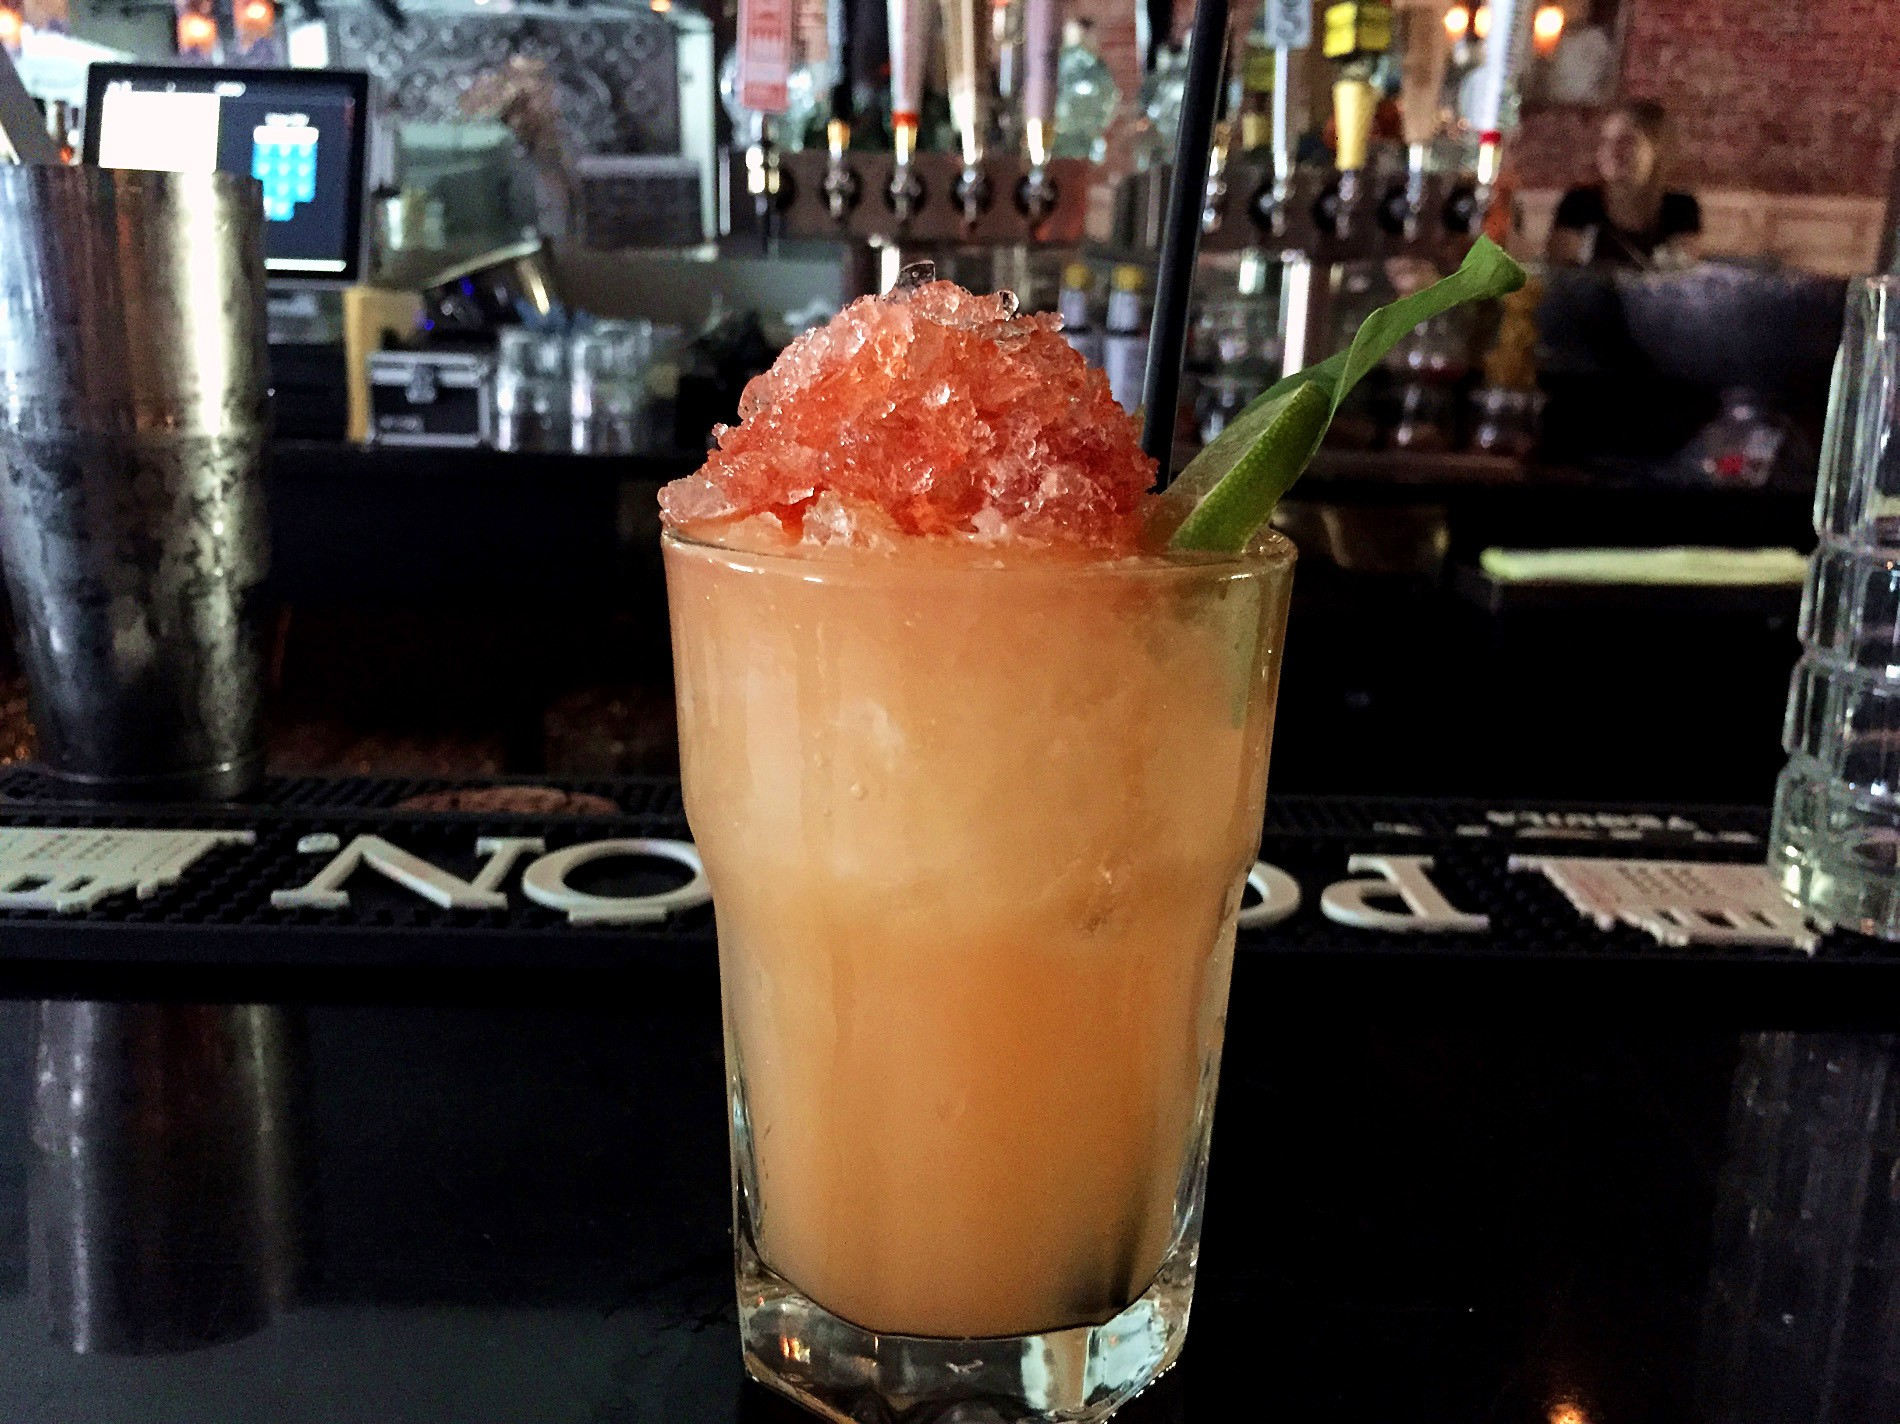 Manahan's Sneaky Tiki includes Claro rum, Lillet Blanc, fresh-squeezed mandarin and lime juice, orgeat, Angostura bitters, and lots of crushed ice.